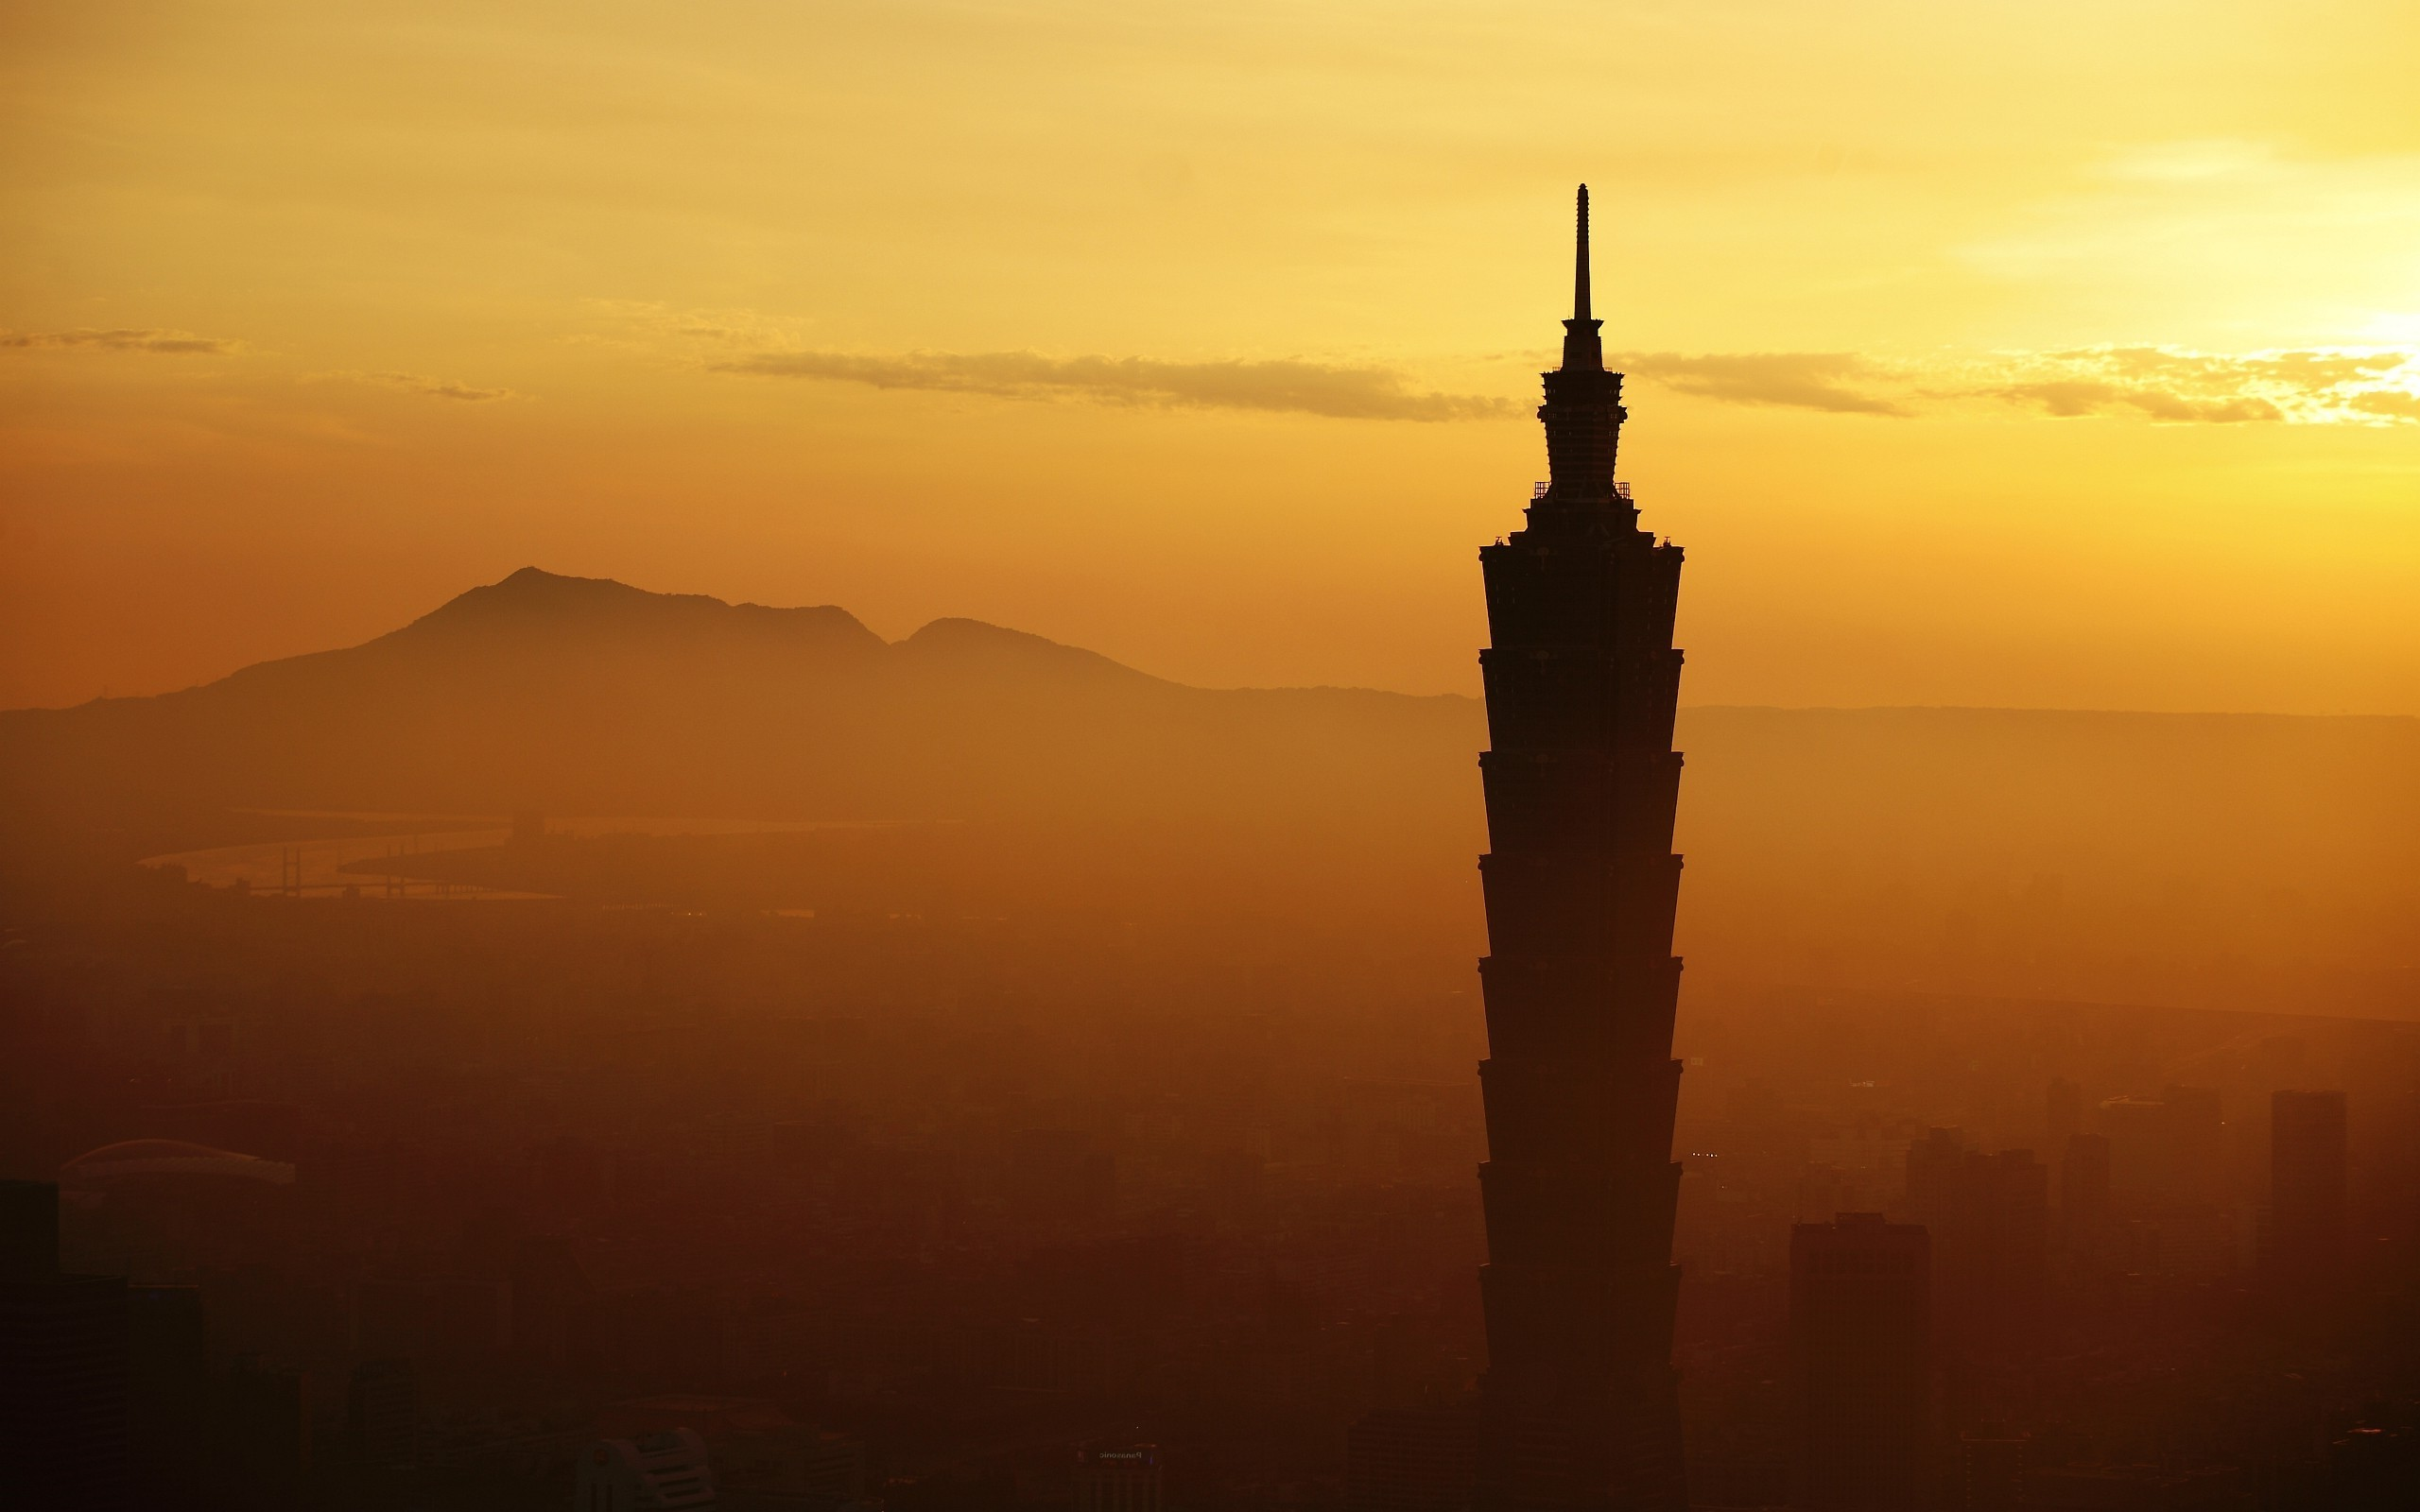 3d New Years Wallpaper Images Sunrise Taipei 101 Architecture Cityscape City